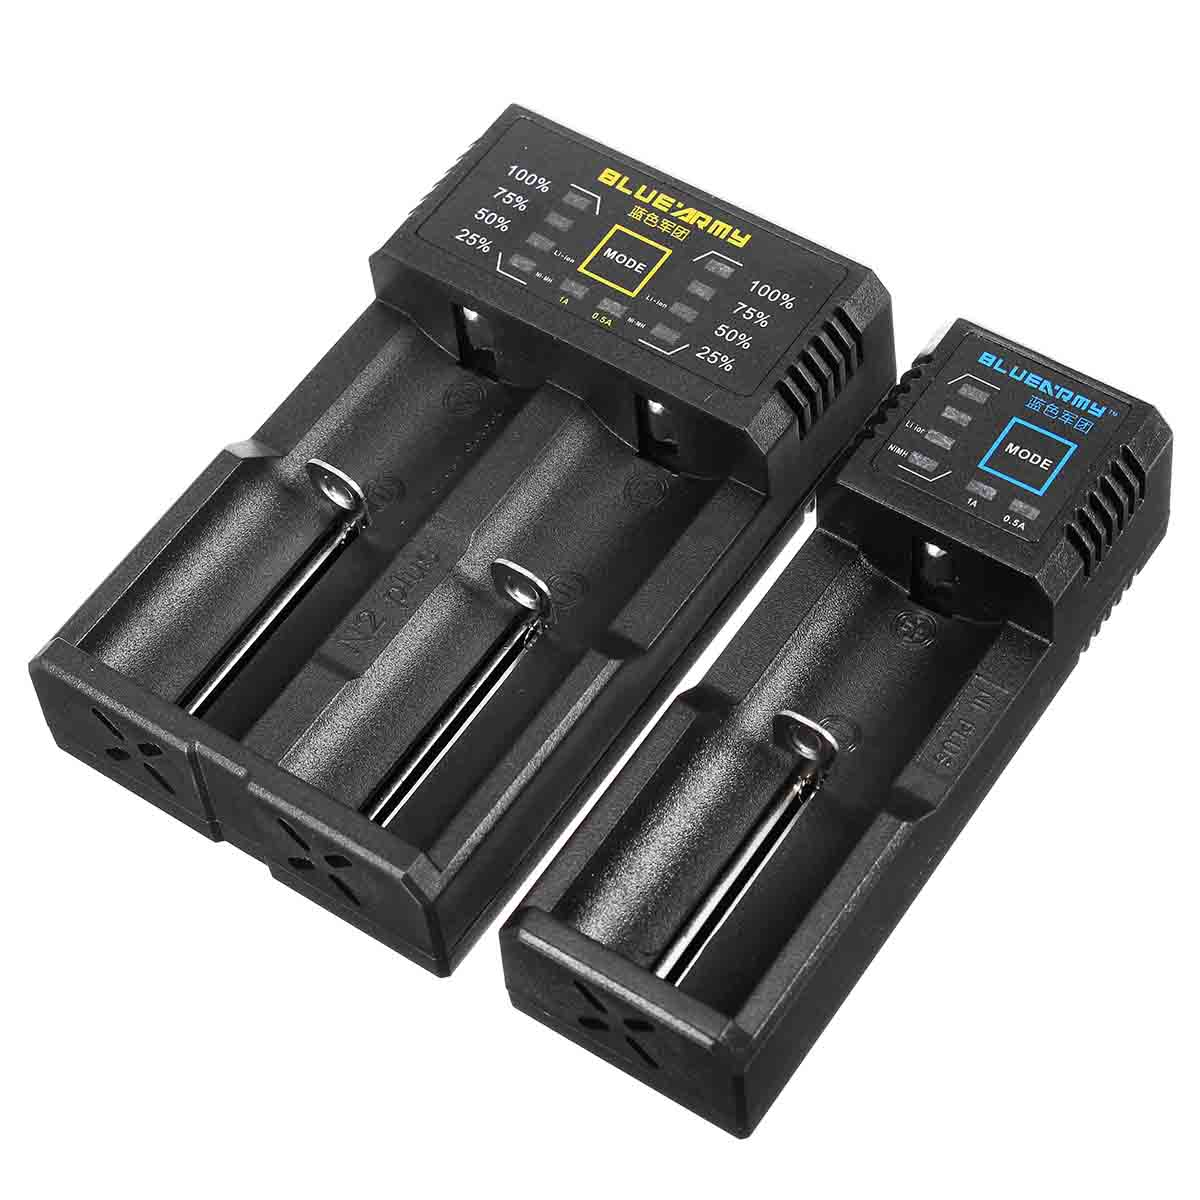 Blue Army N1/N2 Plus Smart Battery Charger Single Double Slot for IMR/Li-ion/Ni-MH/Ni-Cd 26650 18650